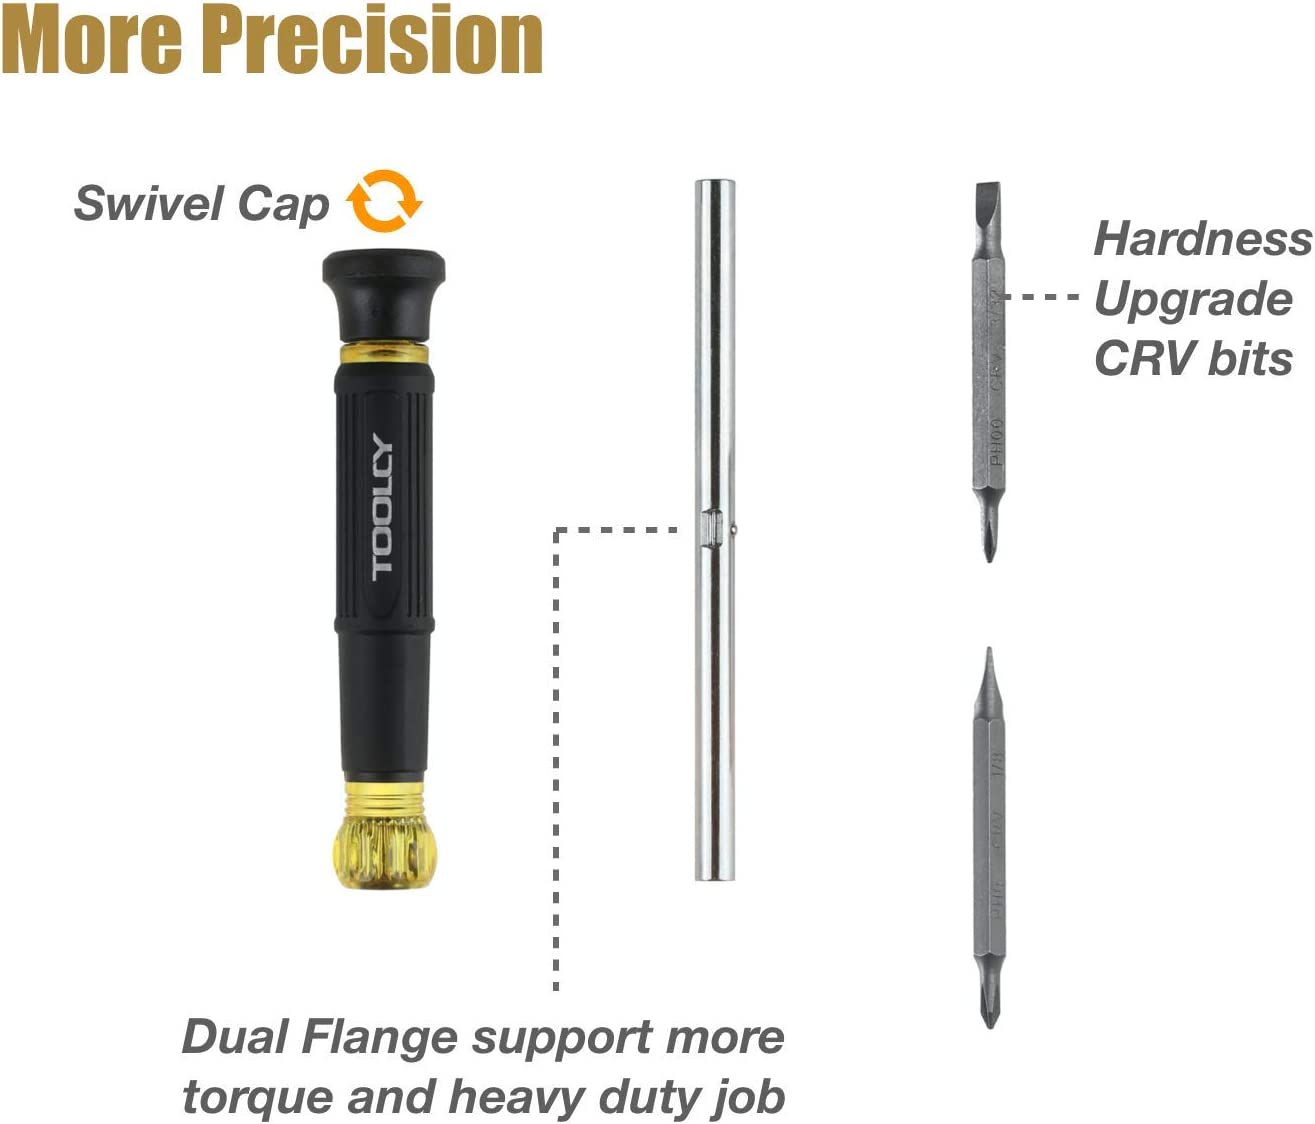 2 Slotted Tips Repair Home Improvement Toolcy 4 in 1 Precision Screwdriver Multi-Bit Screwdriver//Nut Driver with 2 Phillips